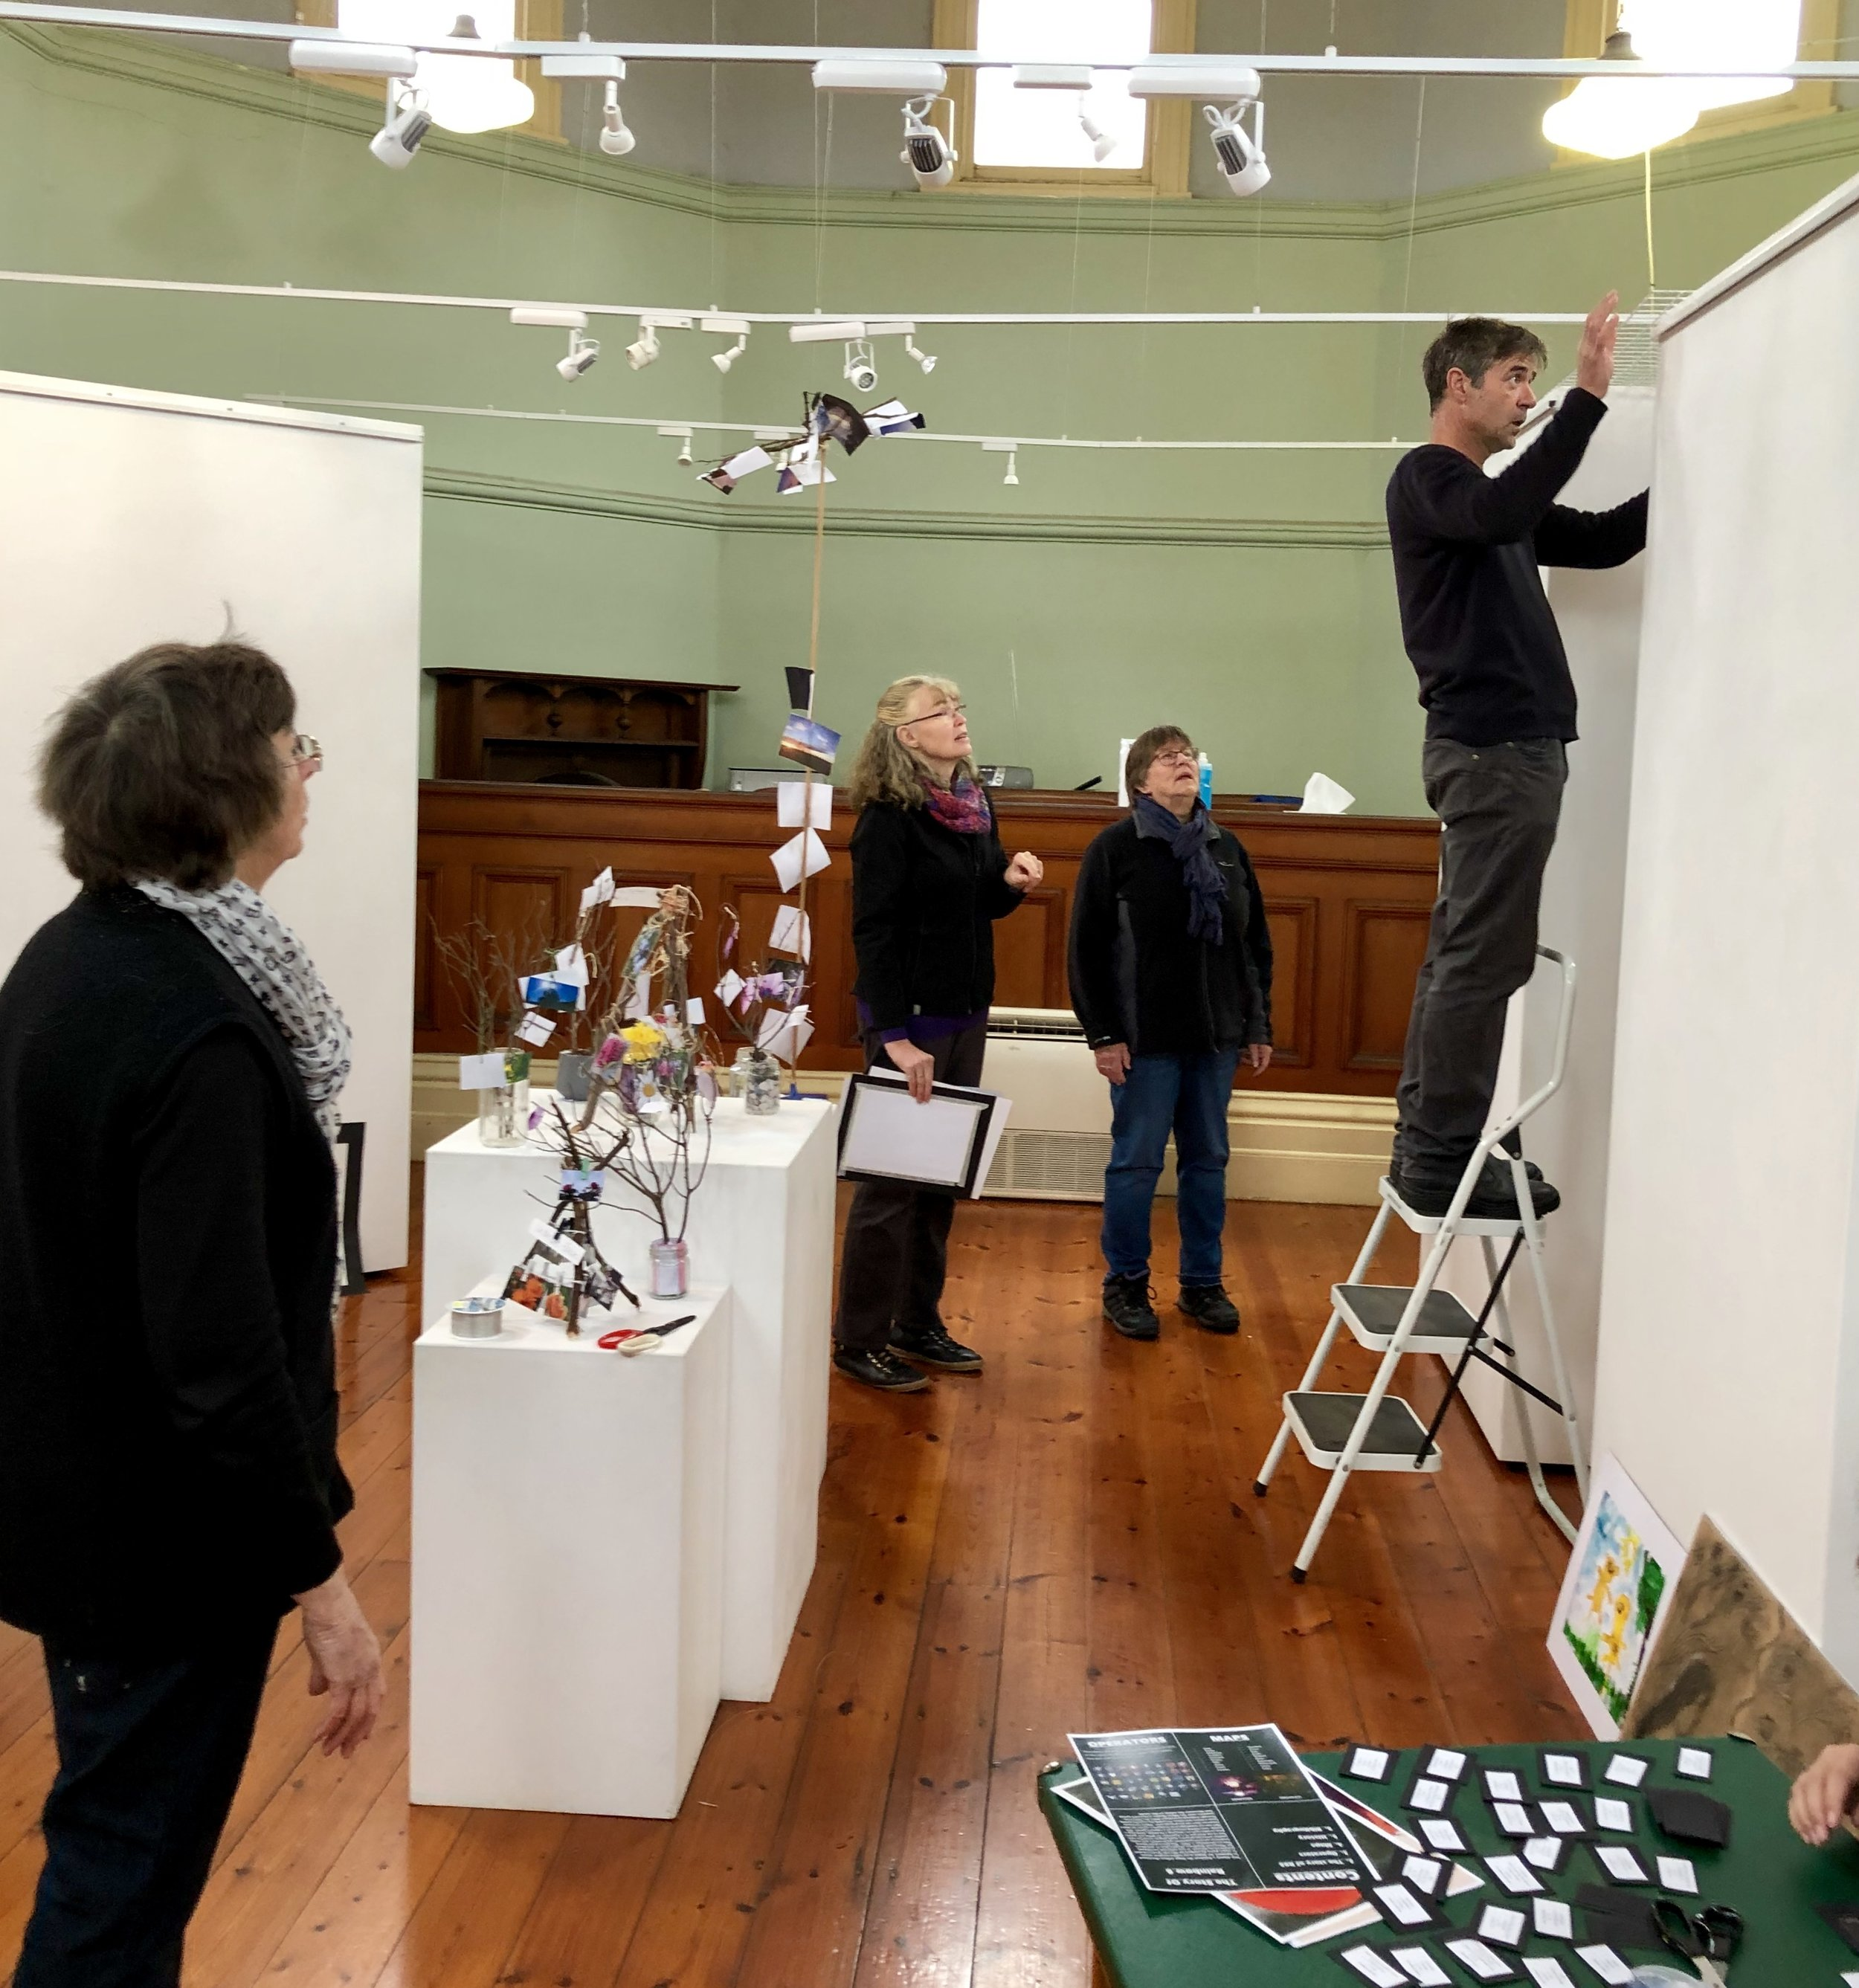 Exhibition Hanging Day